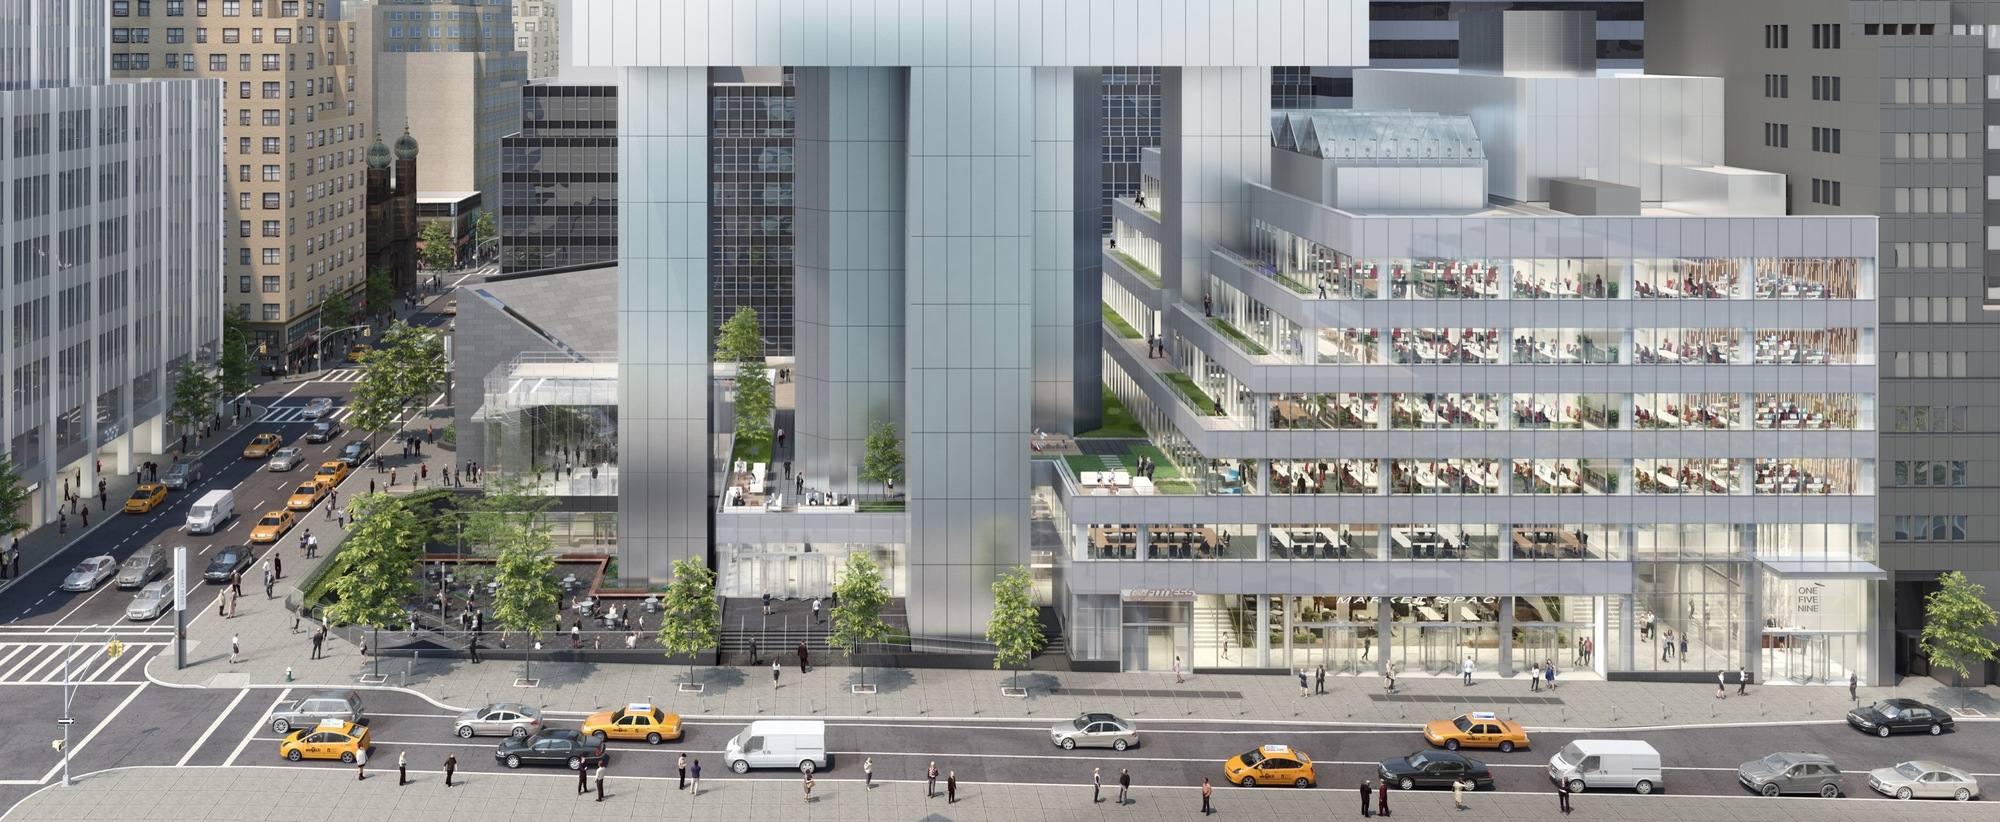 gensler to complete 200 000 square foot renovation of new